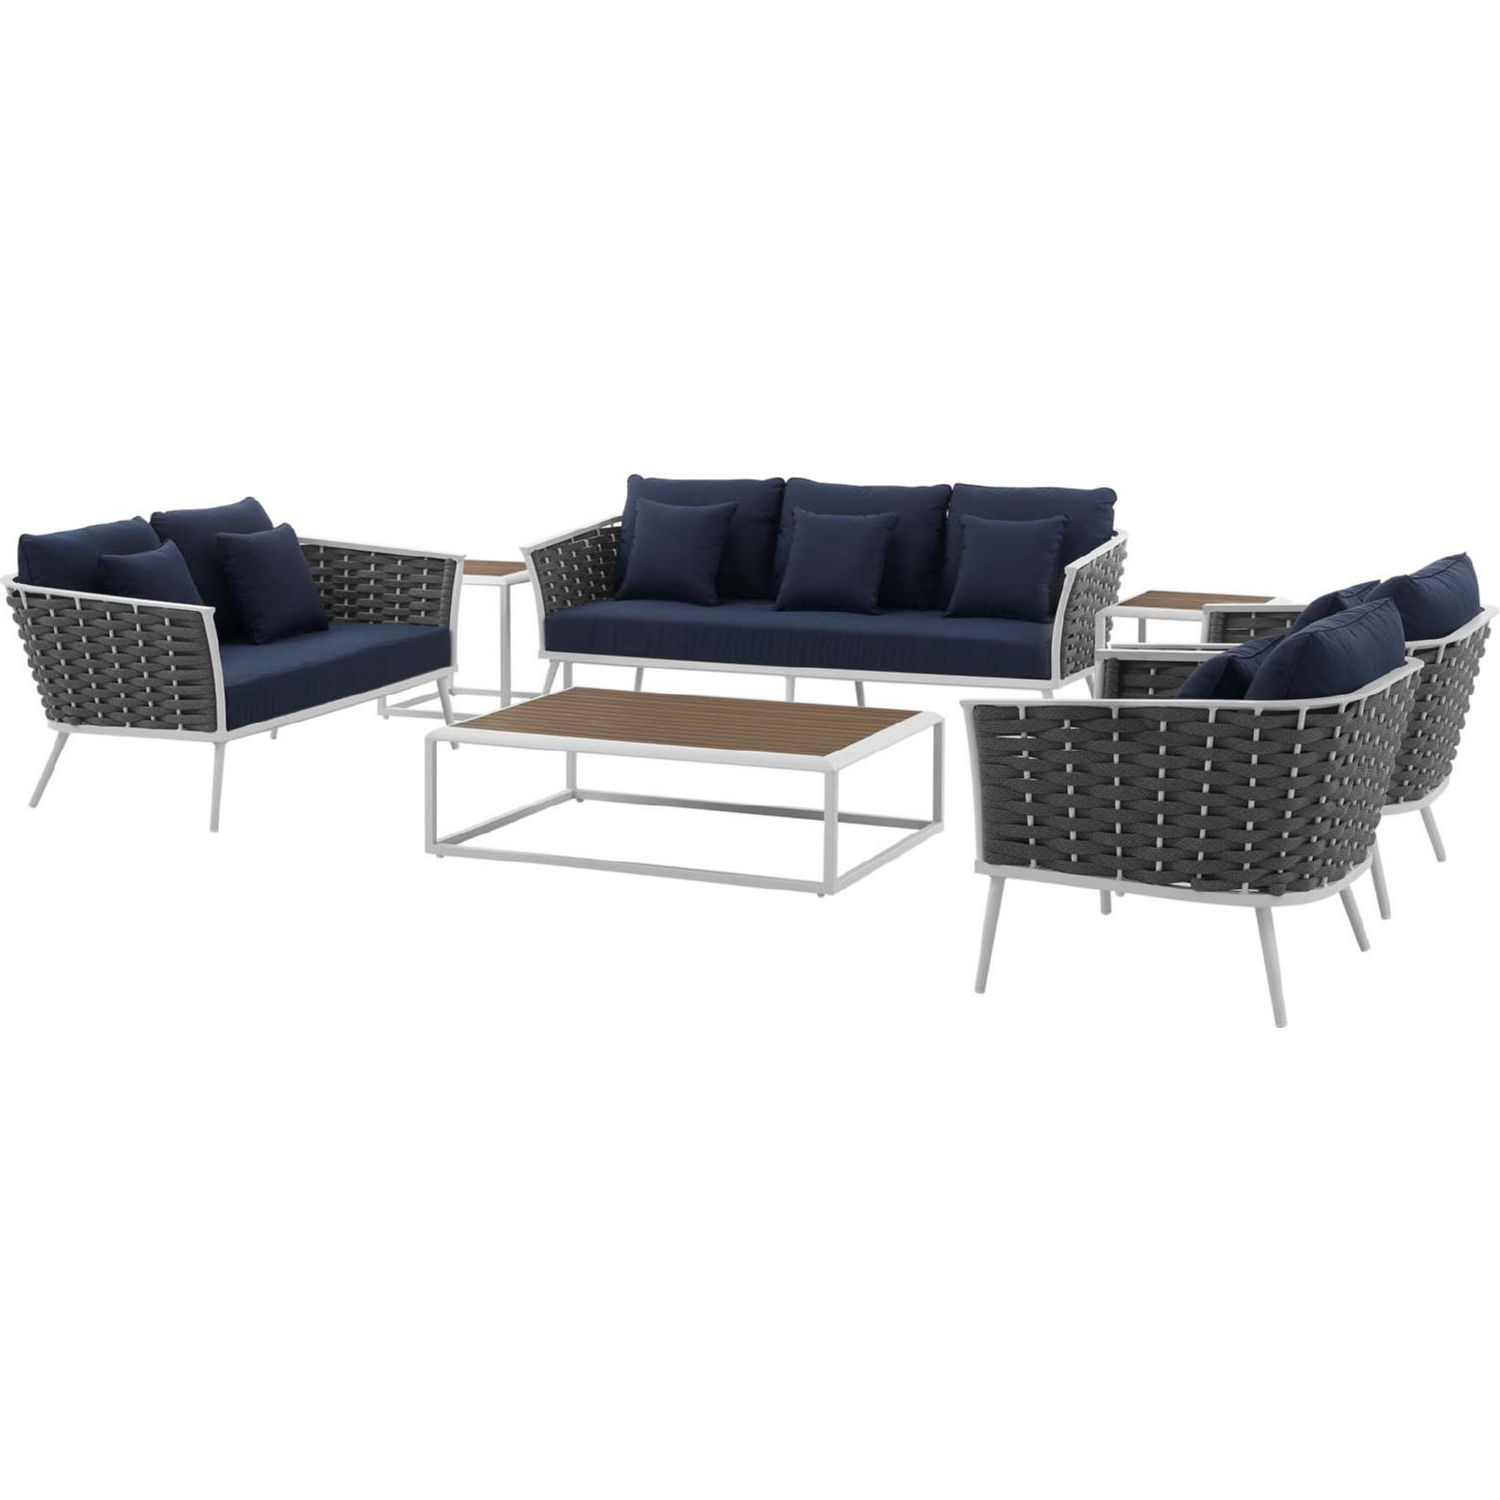 Rossville Outdoor Patio Sofas With Cushions Inside Fashionable Stance 7 Piece Outdoor Sofa Set In White W/ Navy Blue Fabric (View 5 of 25)